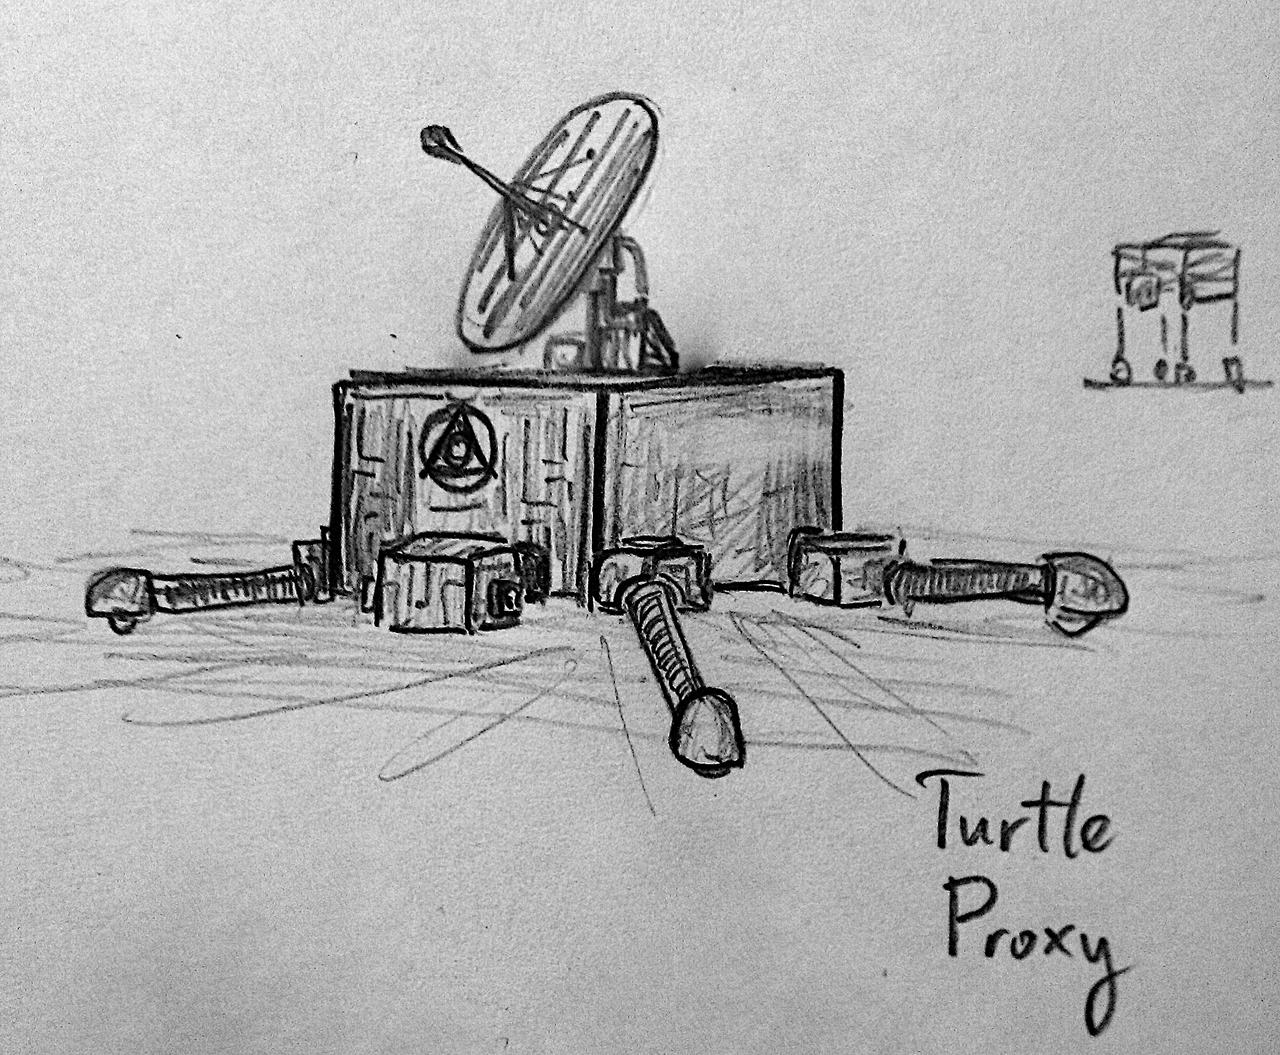 turtle_proxy_comms_module_by_huginthecro